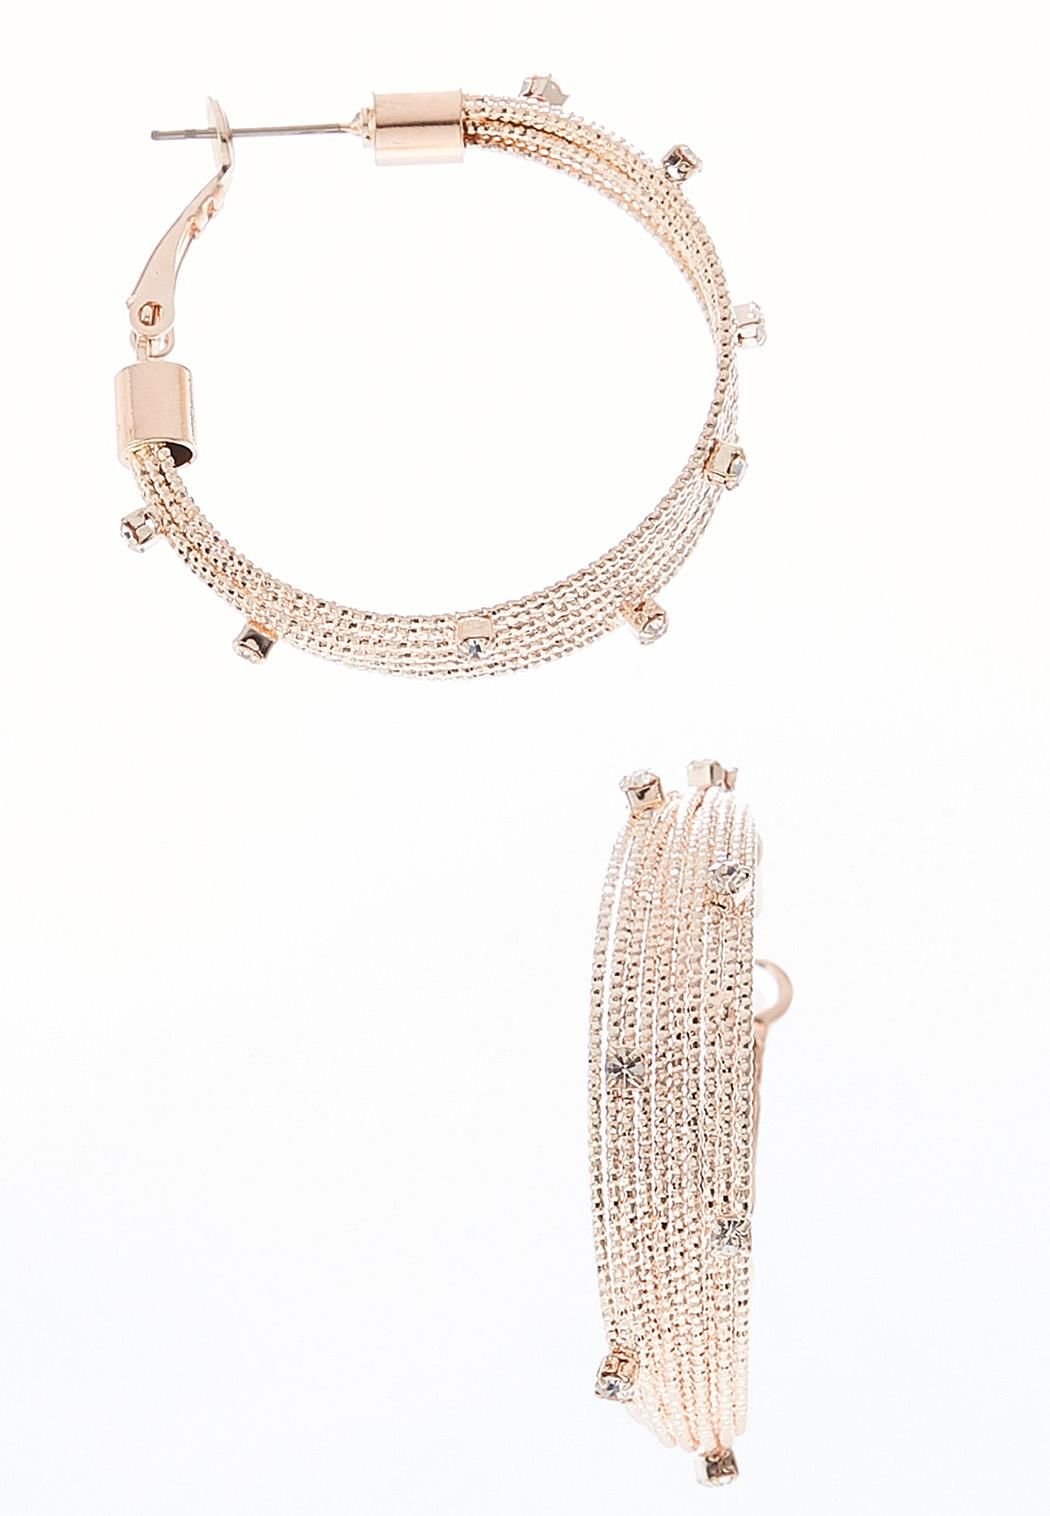 Spiked Rhinestone Hoop Earrings